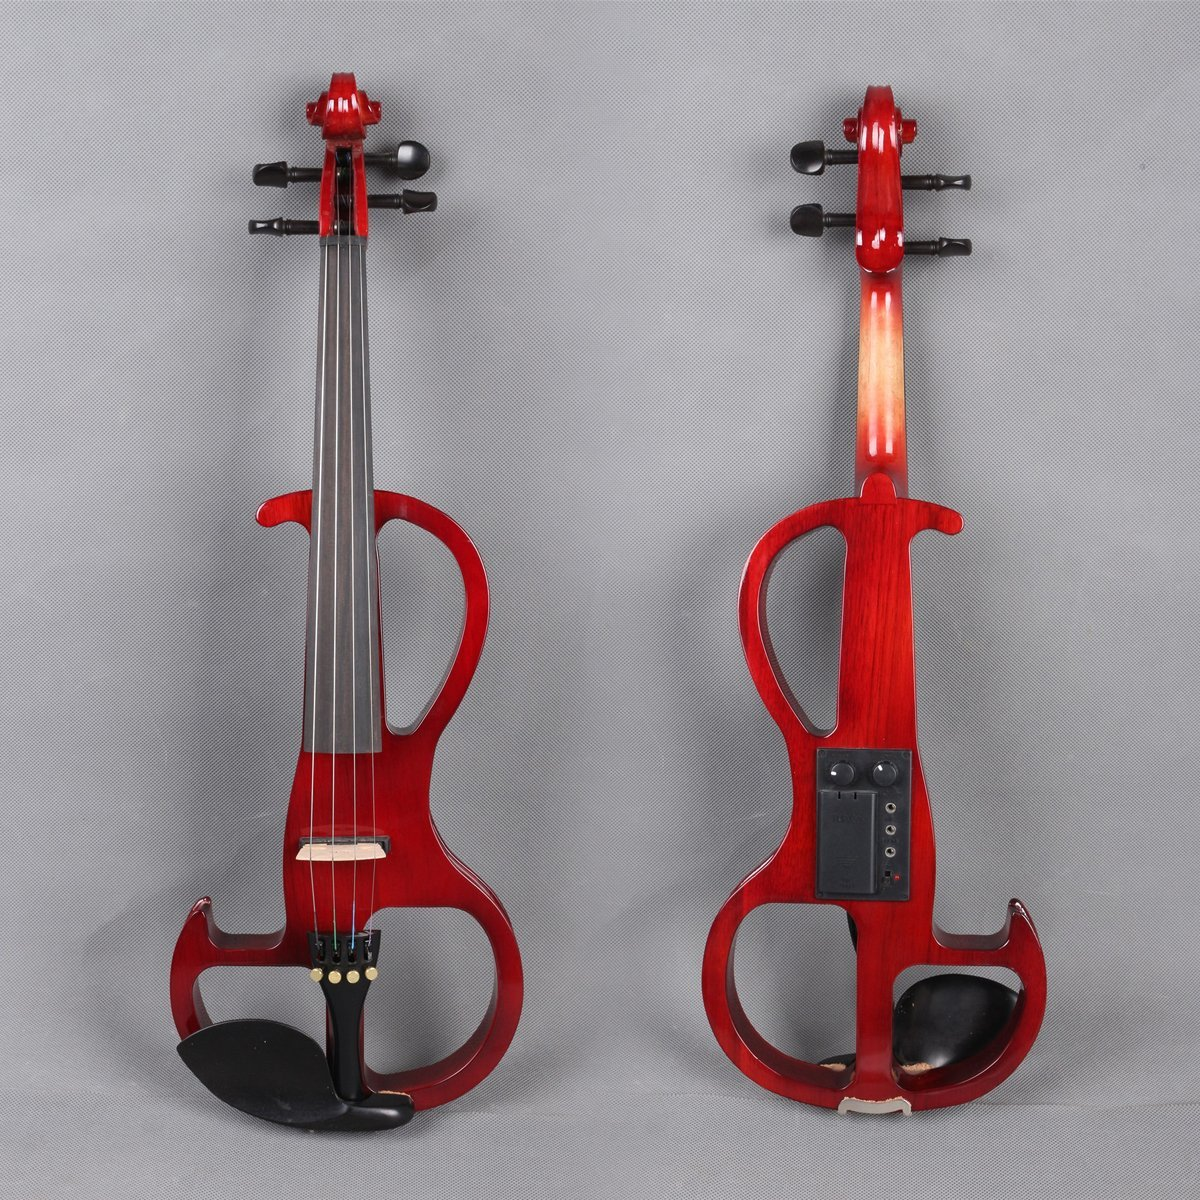 Yinfente Electric Violin 4/4 Full Size Silent Violin Solid wood With Violin Case Bow (Red)